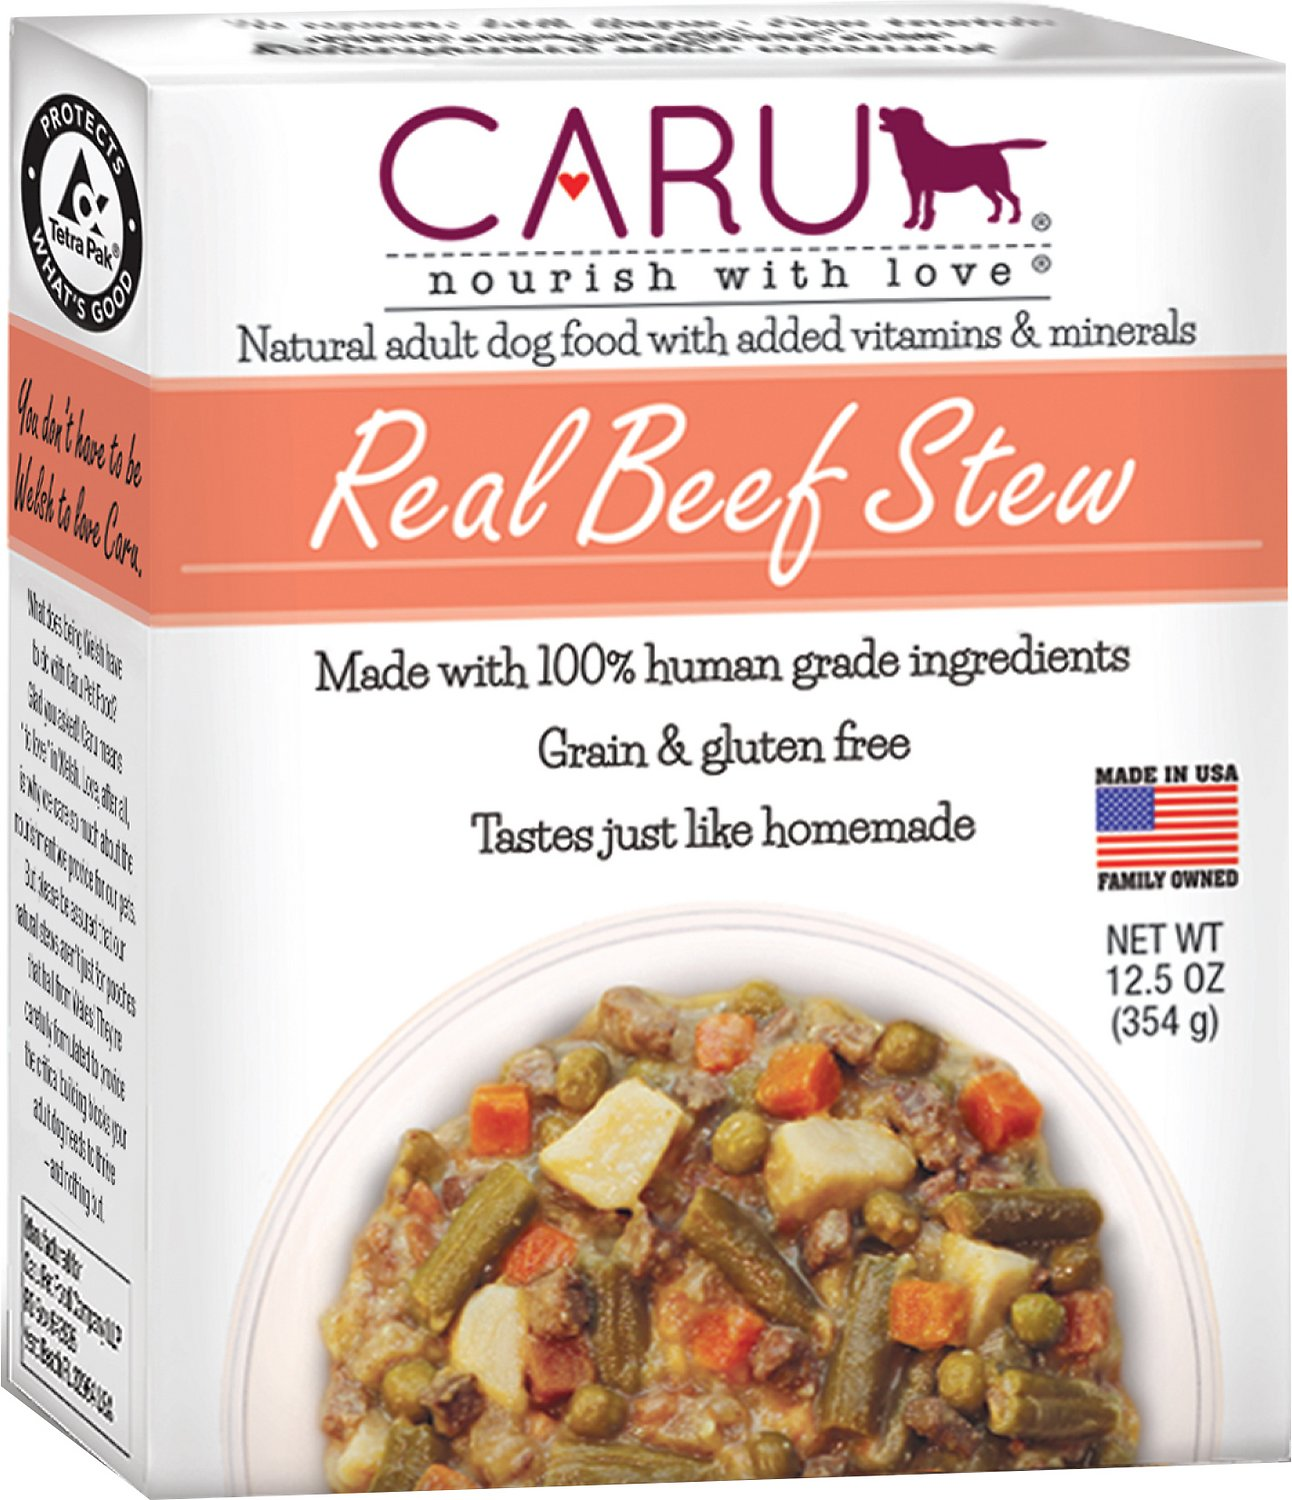 Caru Real Beef Stew Grain-Free Wet Dog Food, 12 5-oz, case of 12